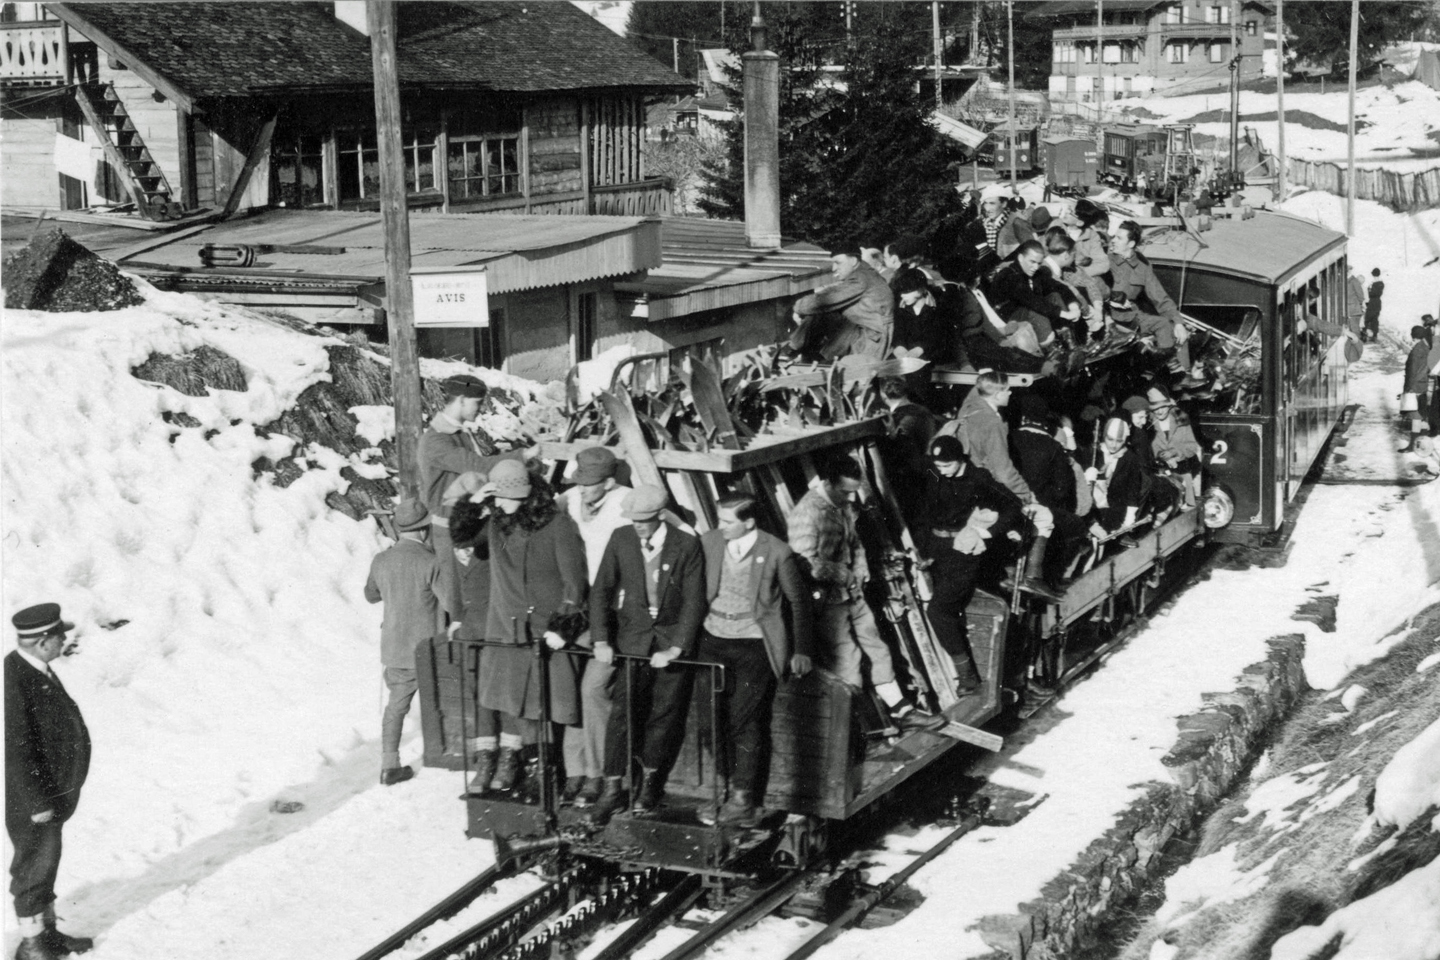 mountain train with skiers